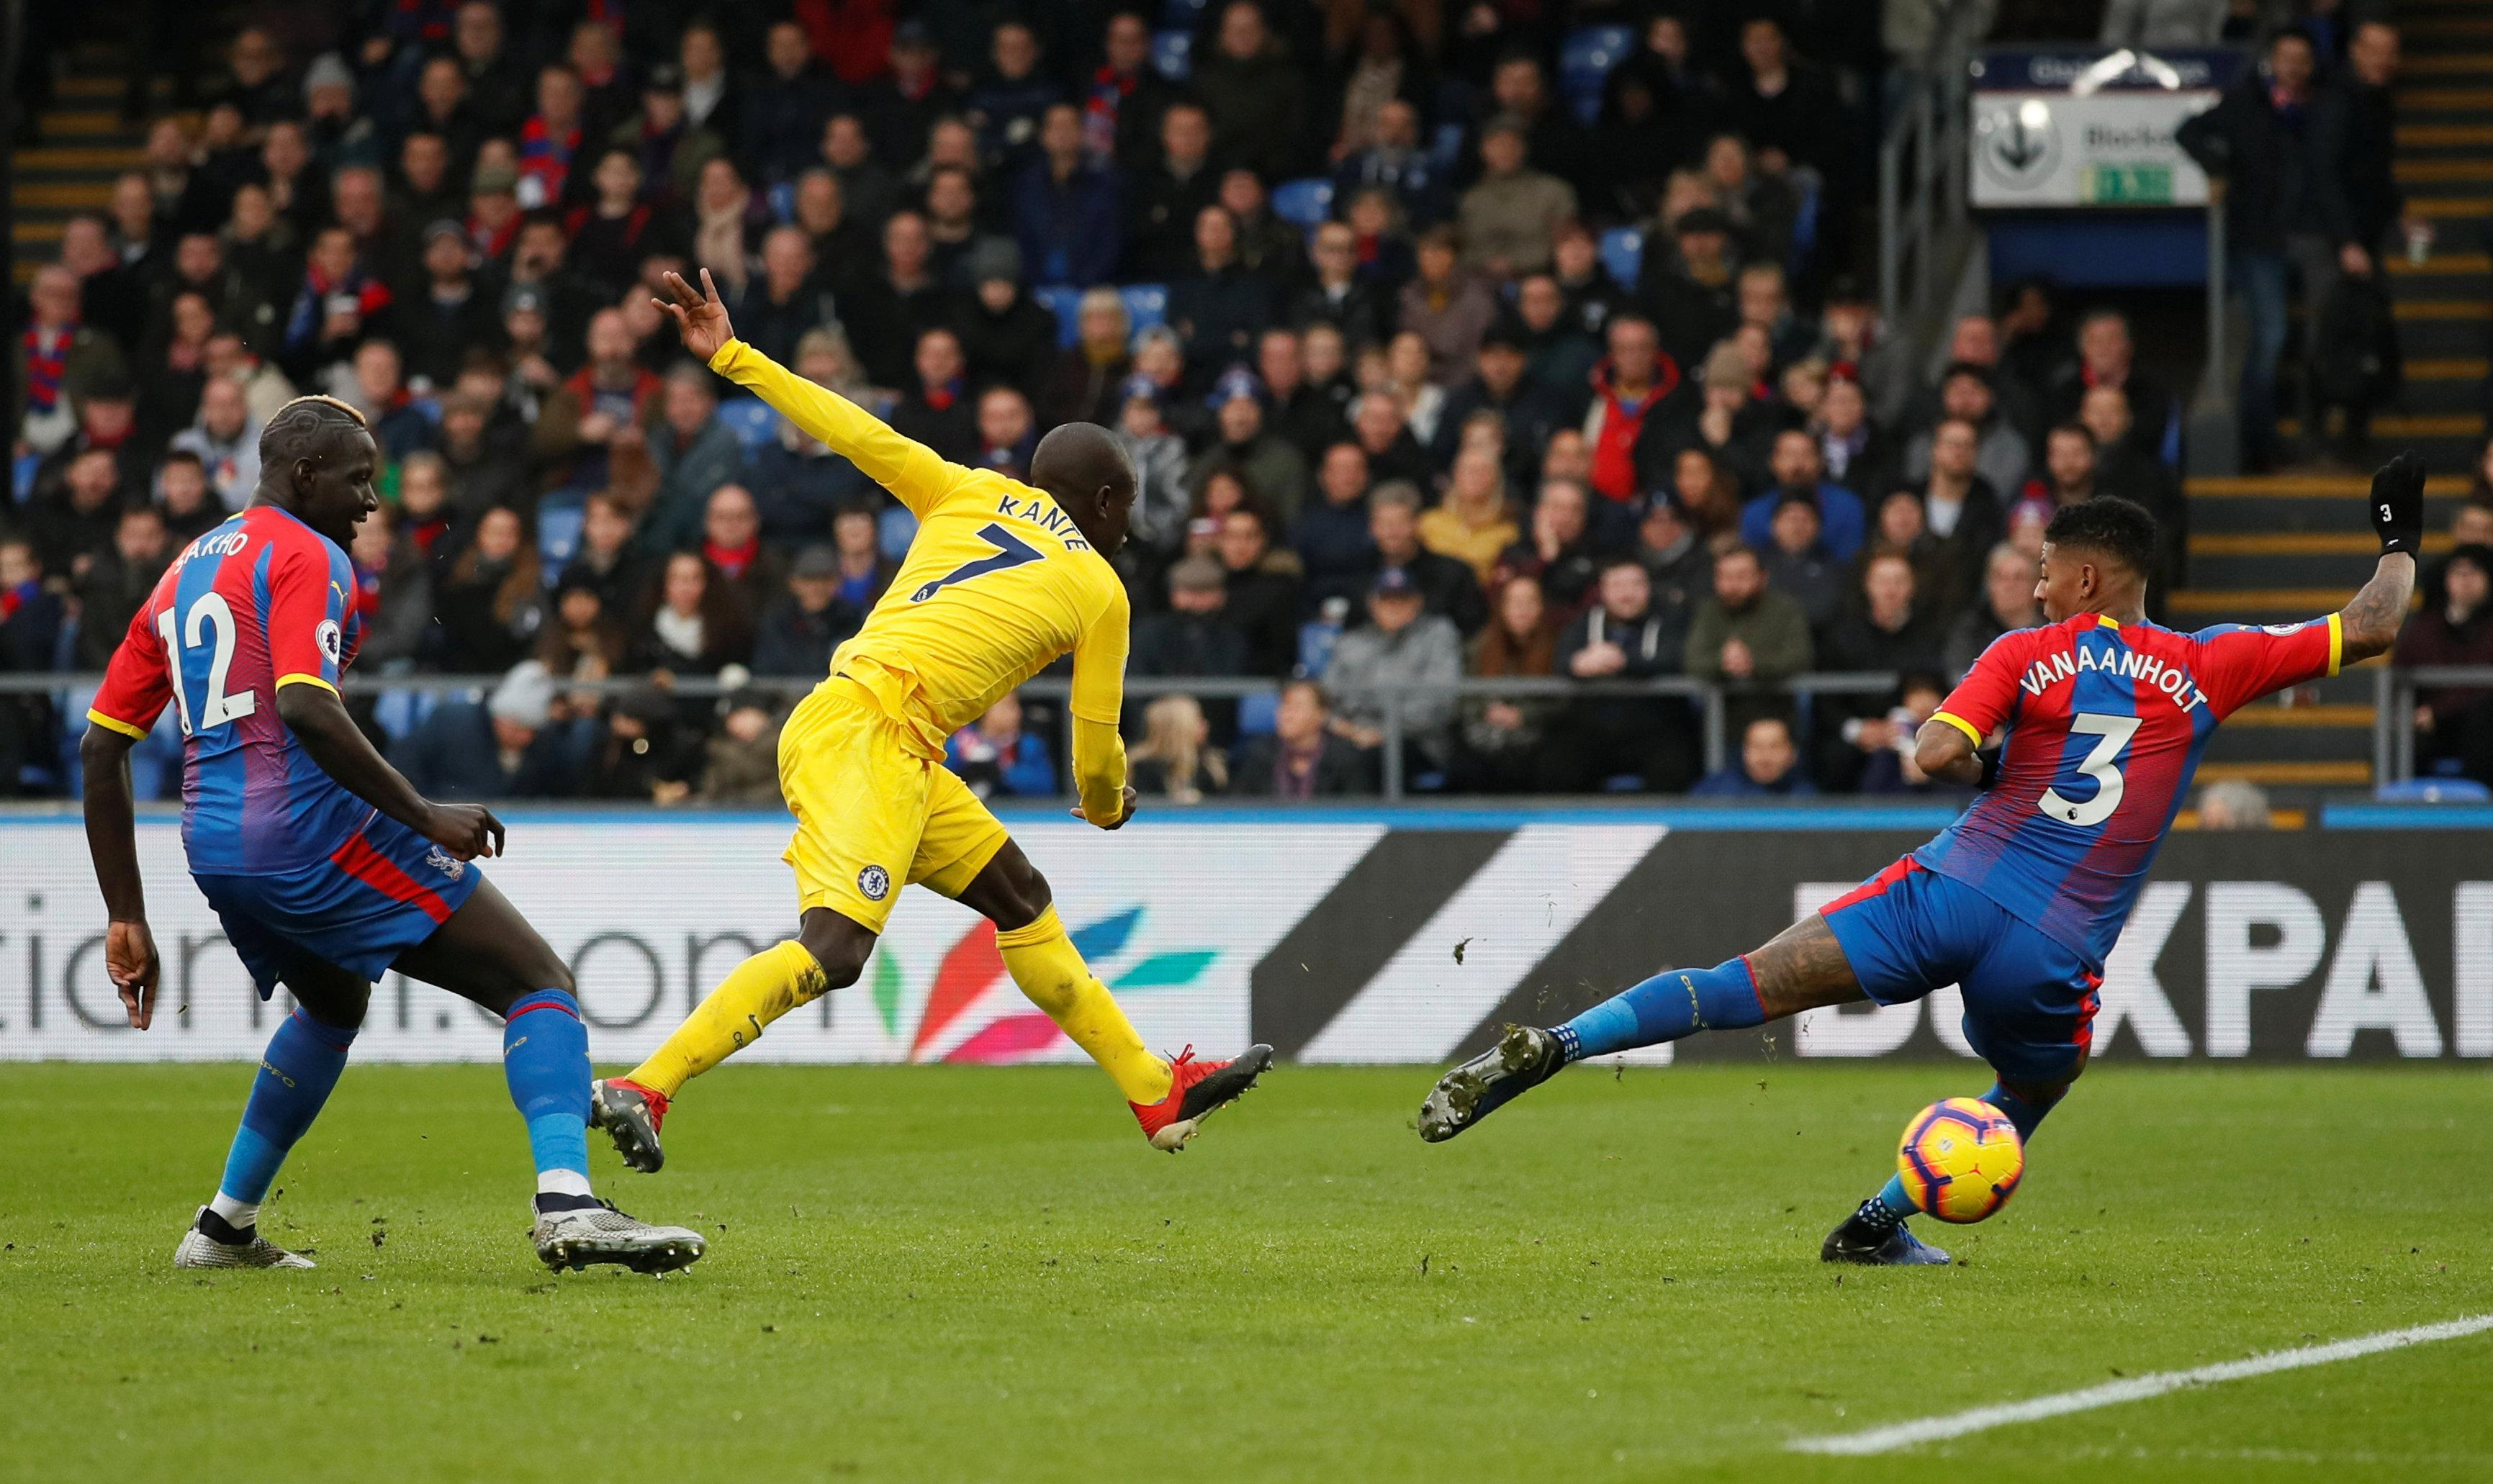 N'Golo Kante broke the deadlock early into the second half with a smart finish